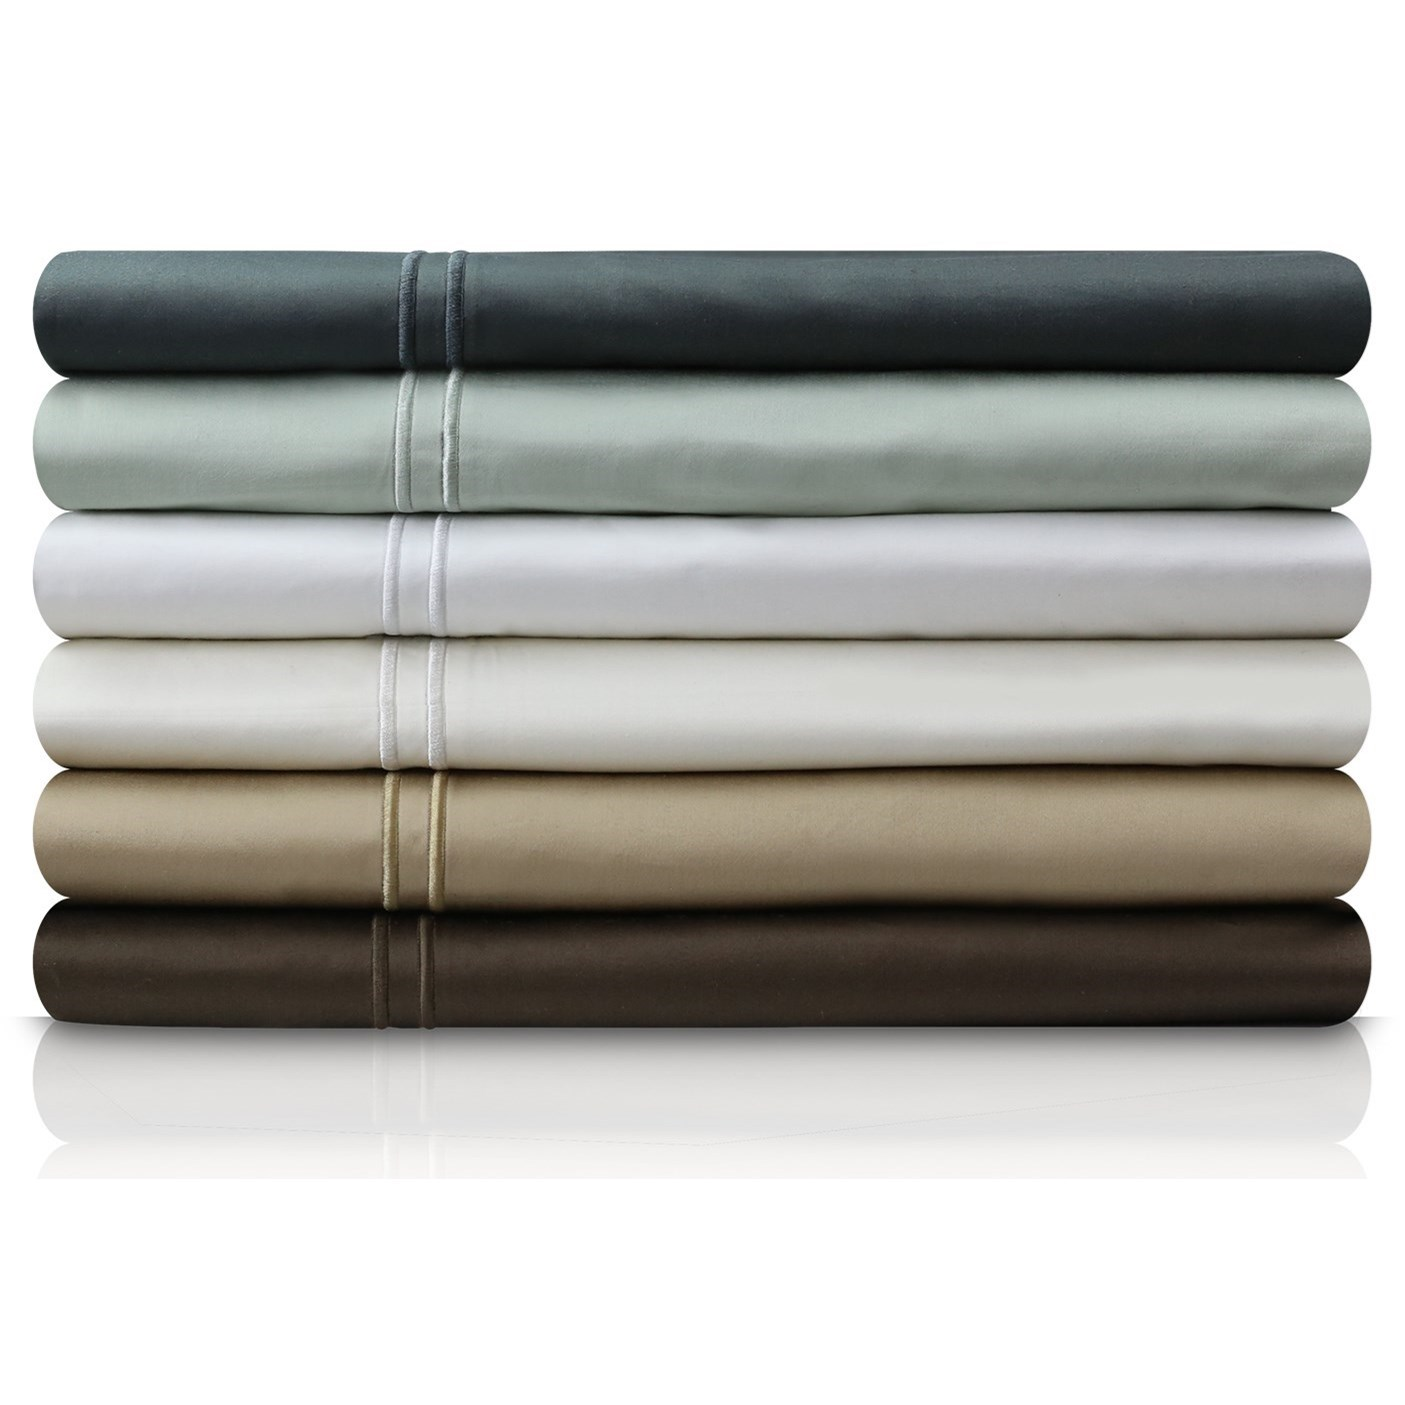 Malouf Egyptian Cotton Split Cal King 600 TC Egyptian Cotton Sheet  - Item Number: MA06SCWHSS